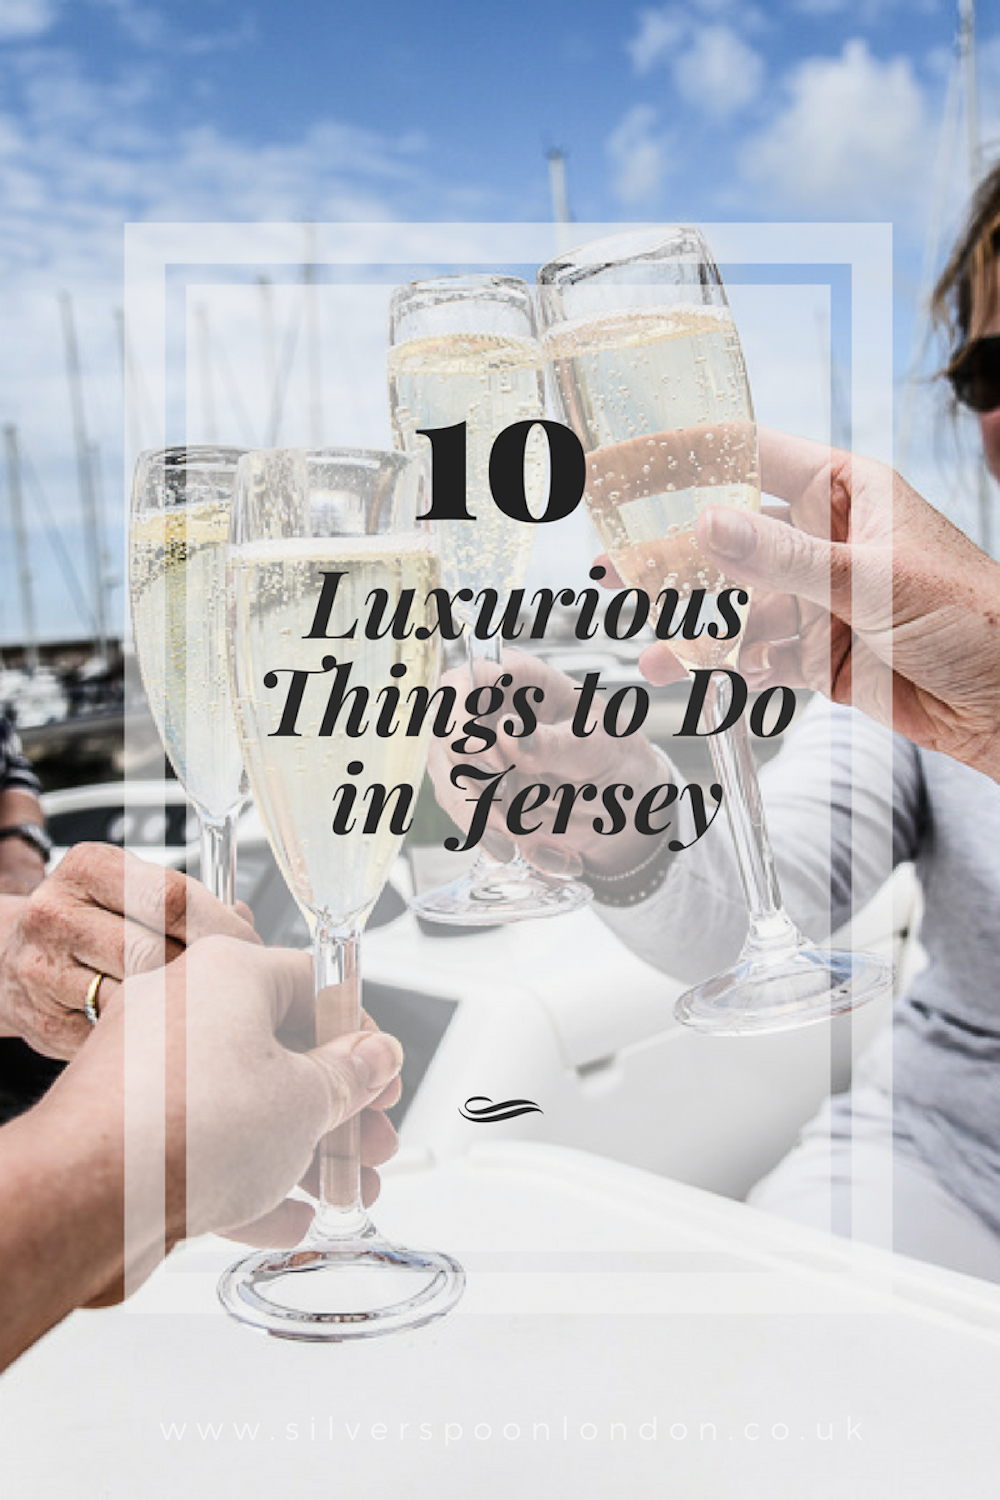 Top 10 Luxurious things to do in Jersey